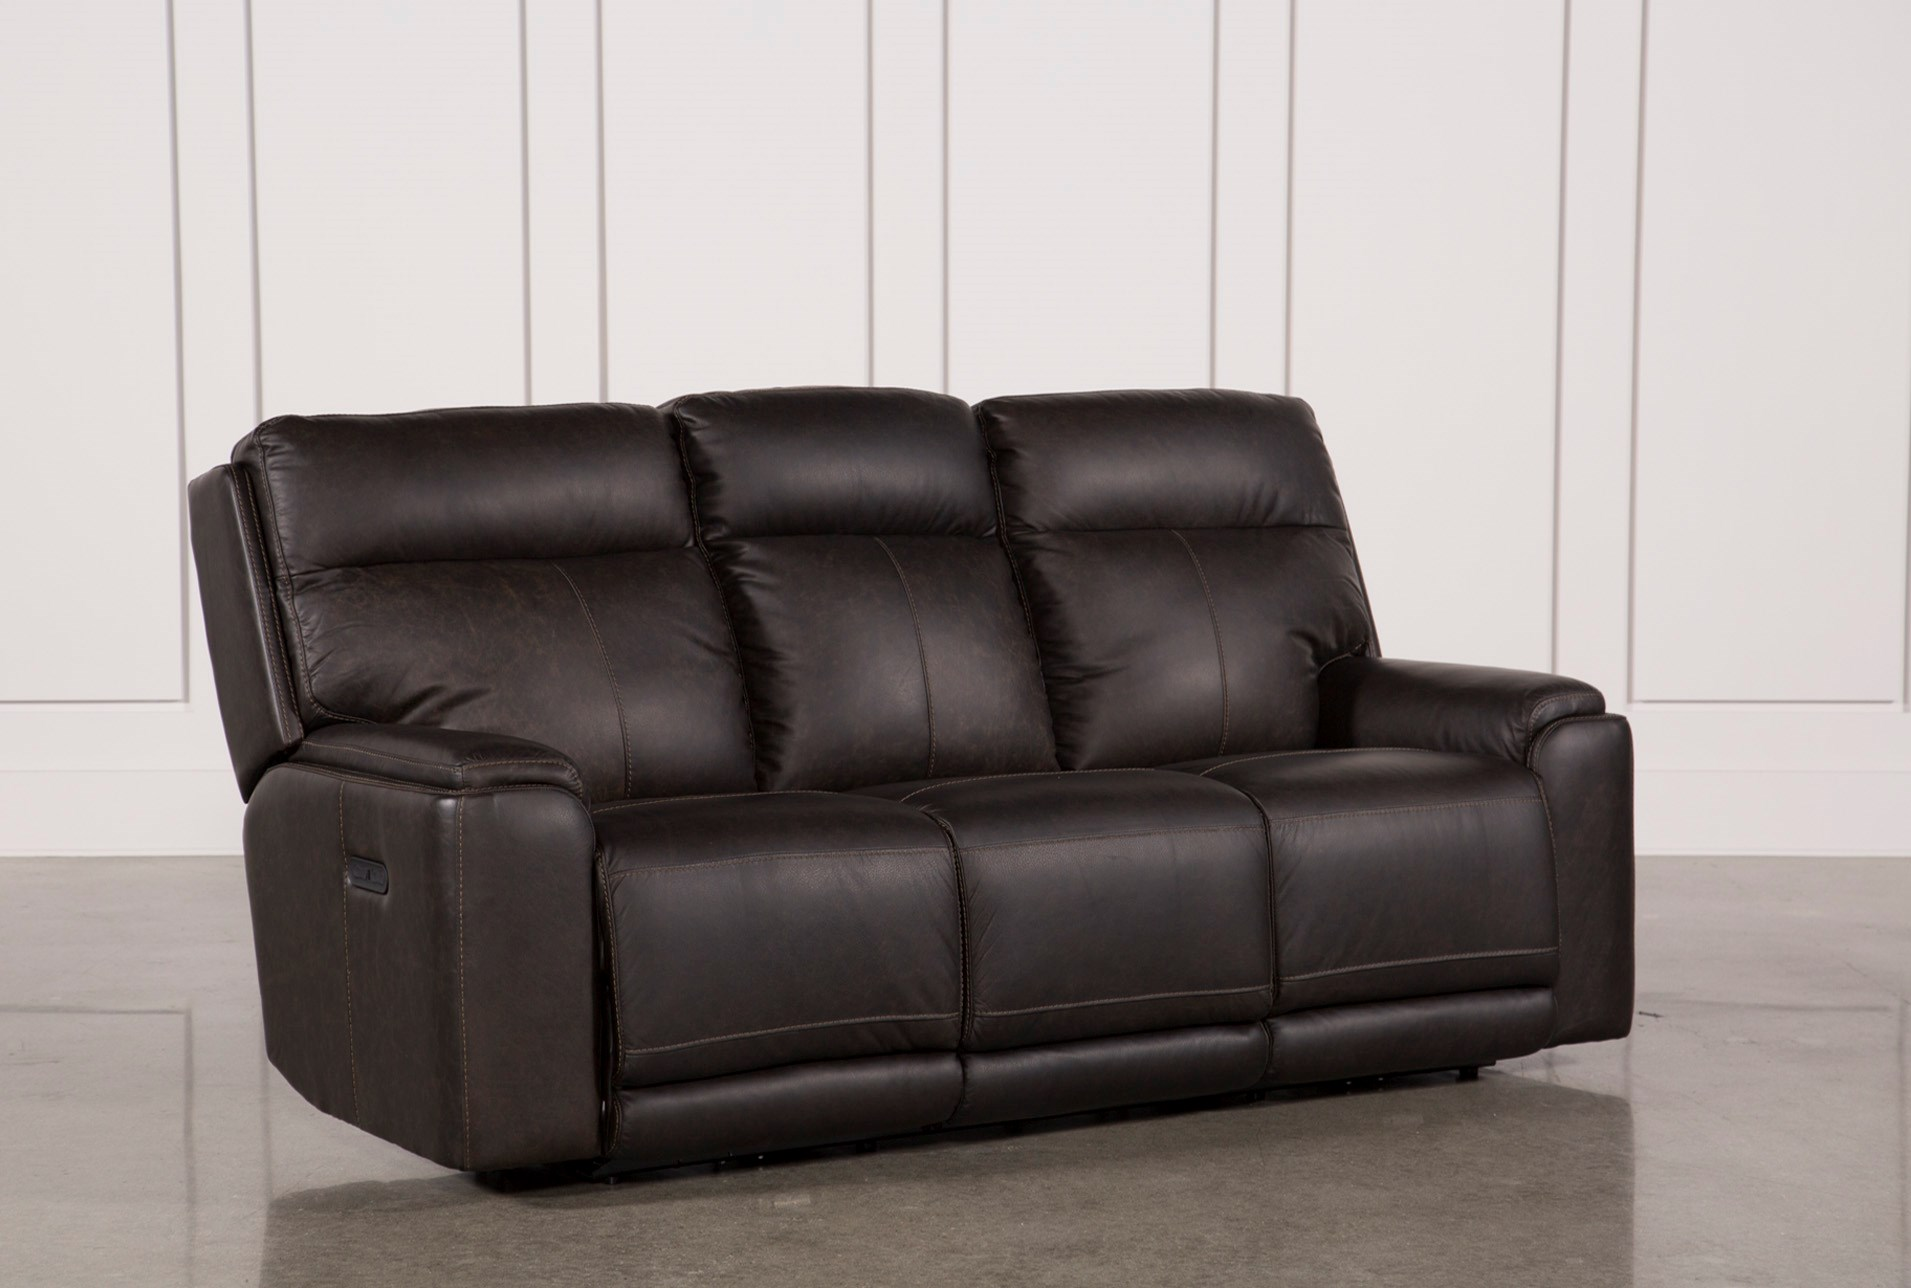 Bowie Leather Power Reclining Sofa W Power Headrest Living Spaces ~ Best Place To Buy Reclining Sofa